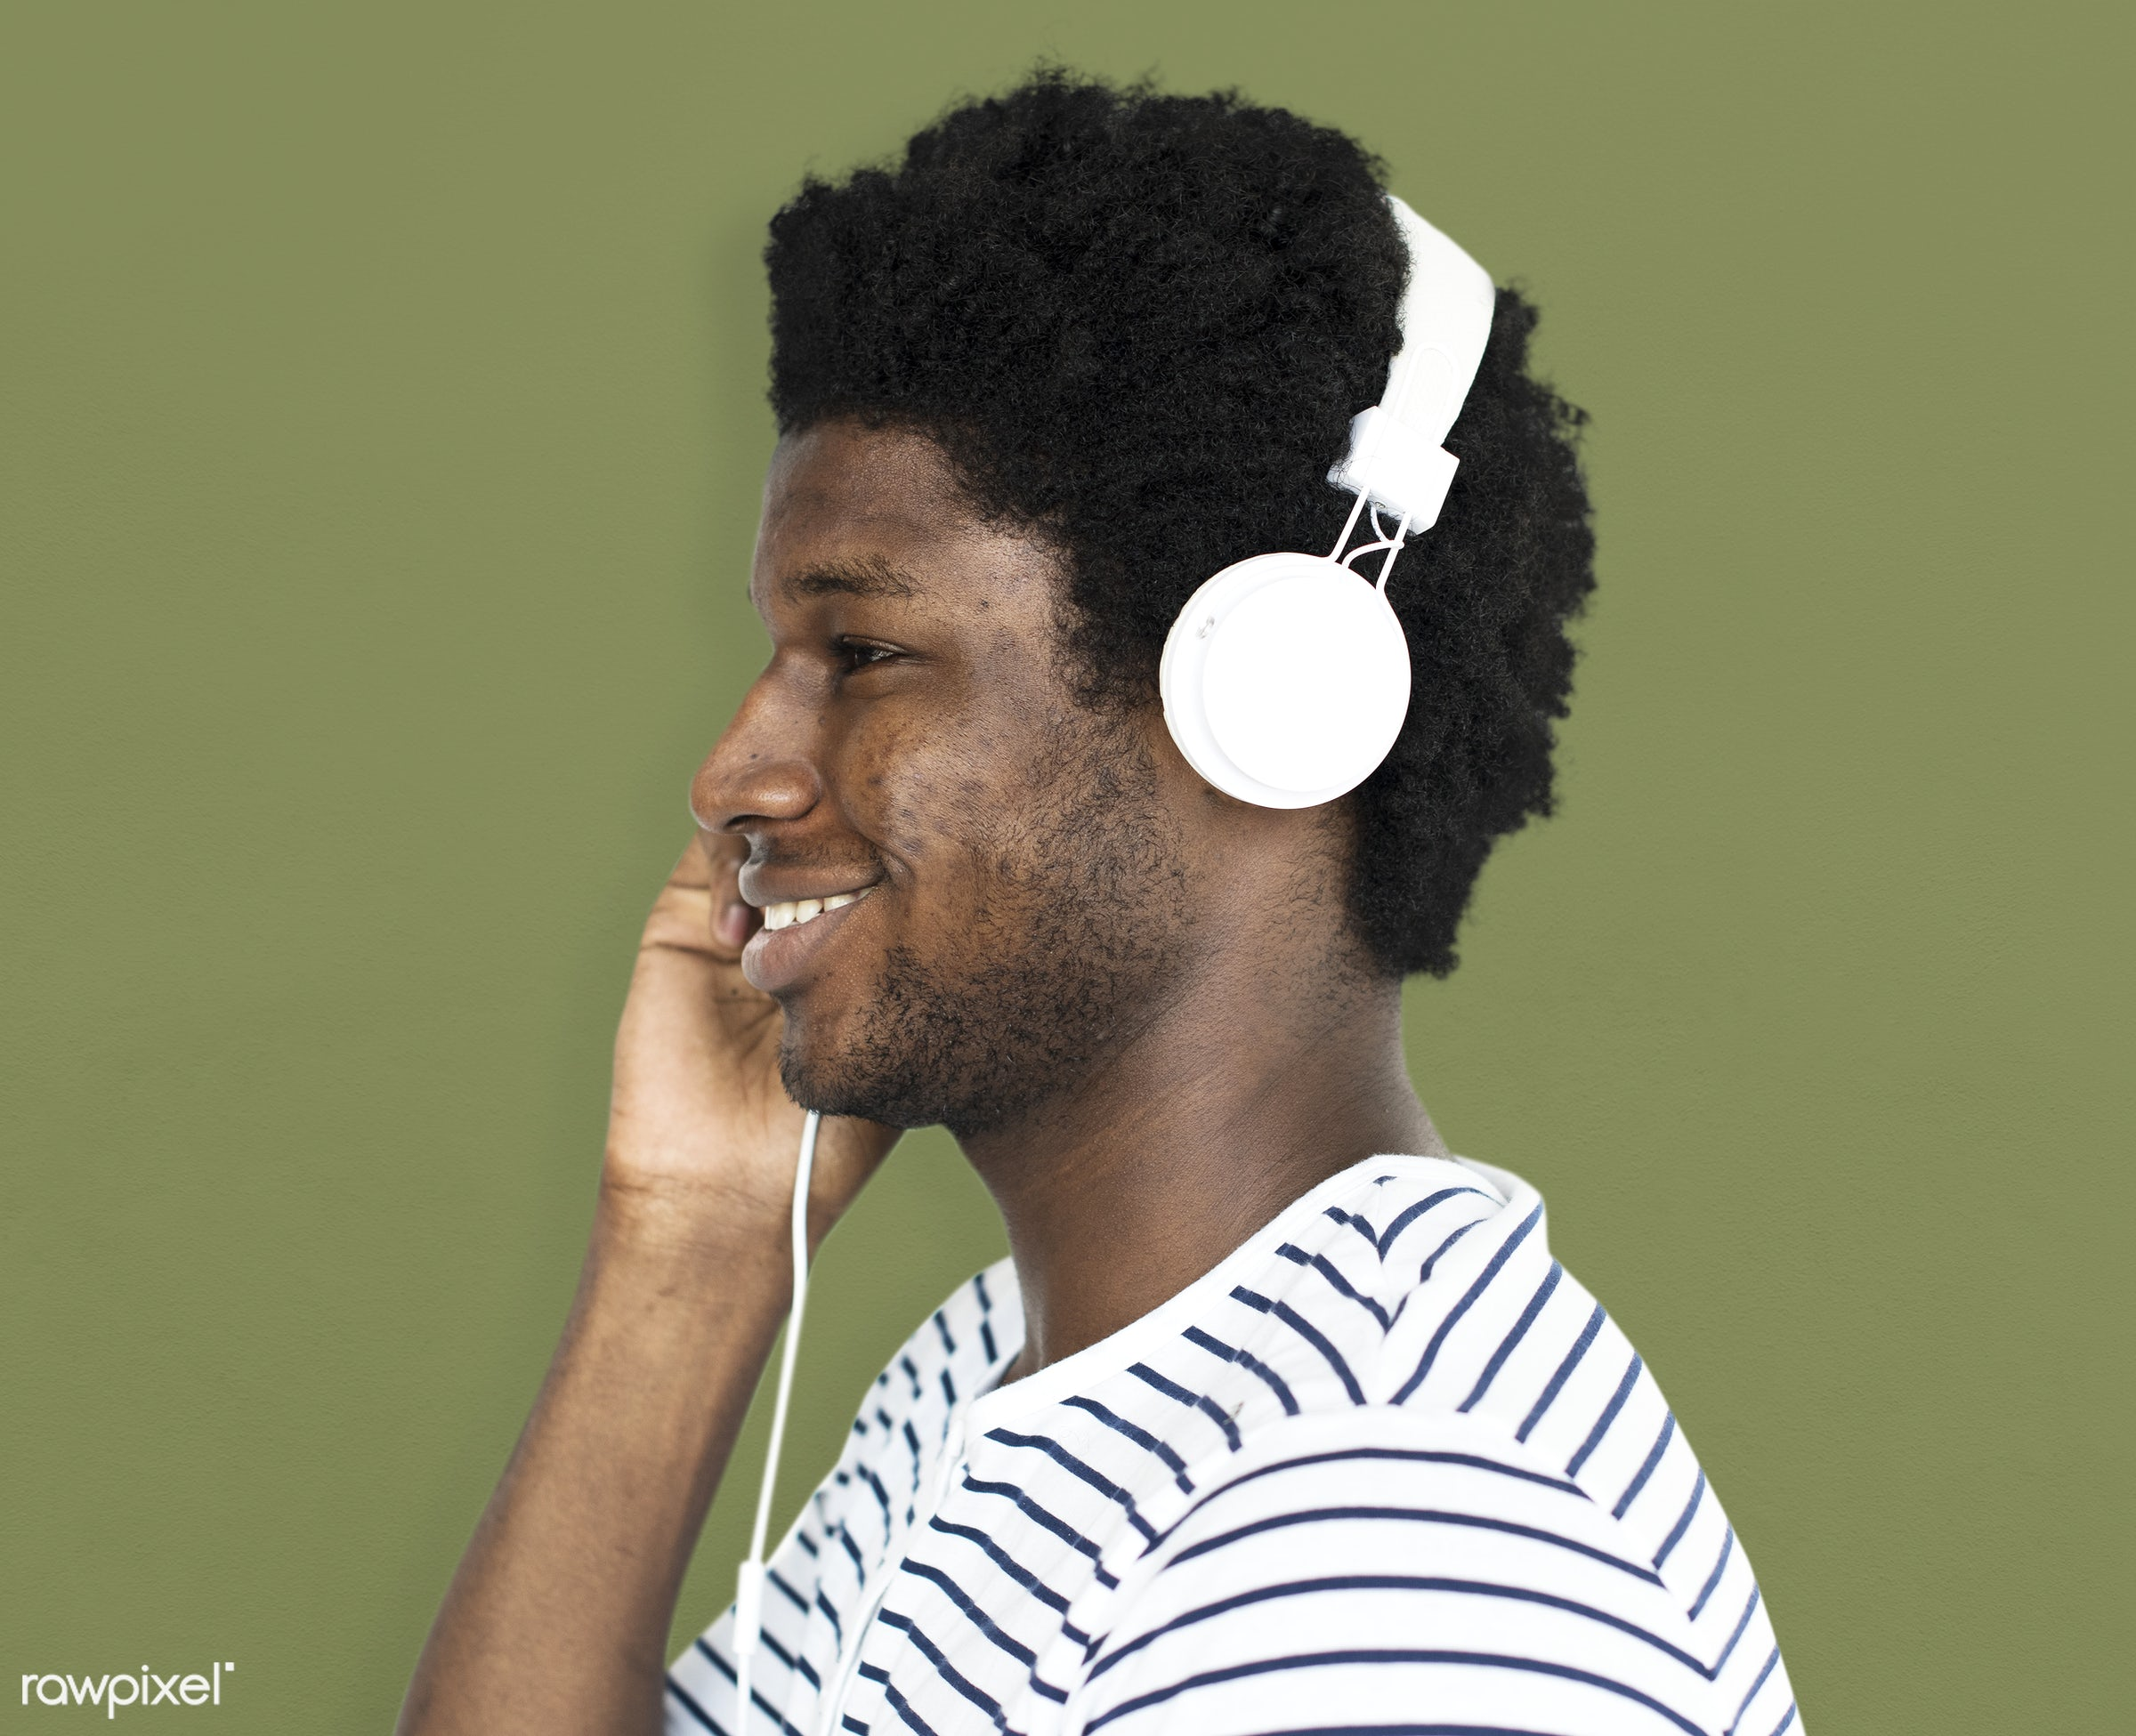 expression, person, technology, recreation, people, headphone, man, activity, black, music, isolated, connection, guy,...